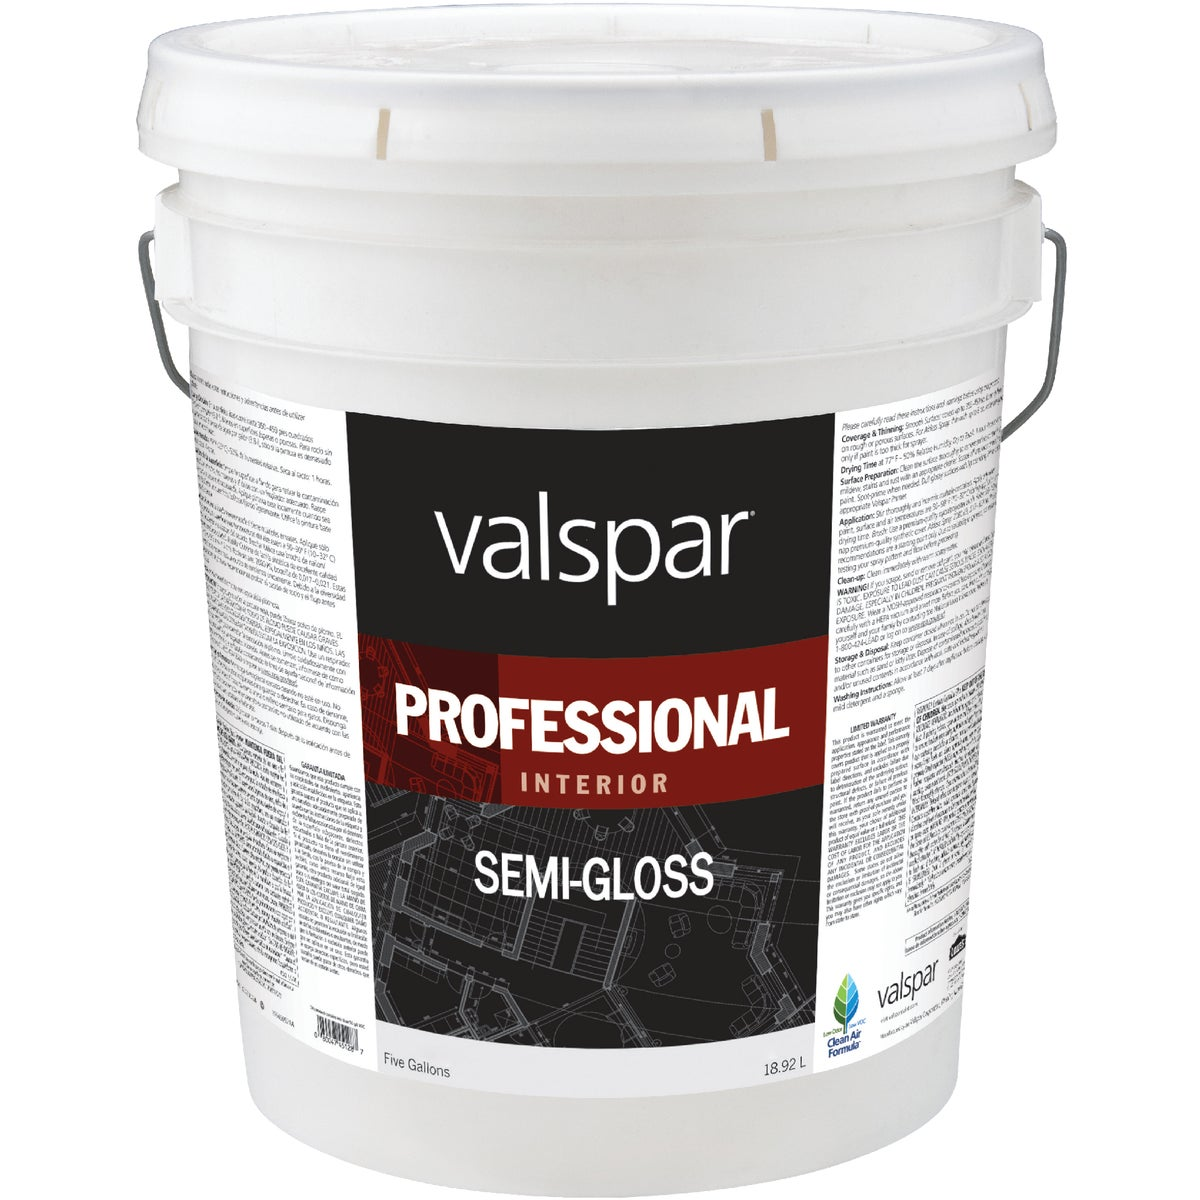 INT S/G HIGH-HIDE PAINT - 045.0011900.008 by Valspar Corp